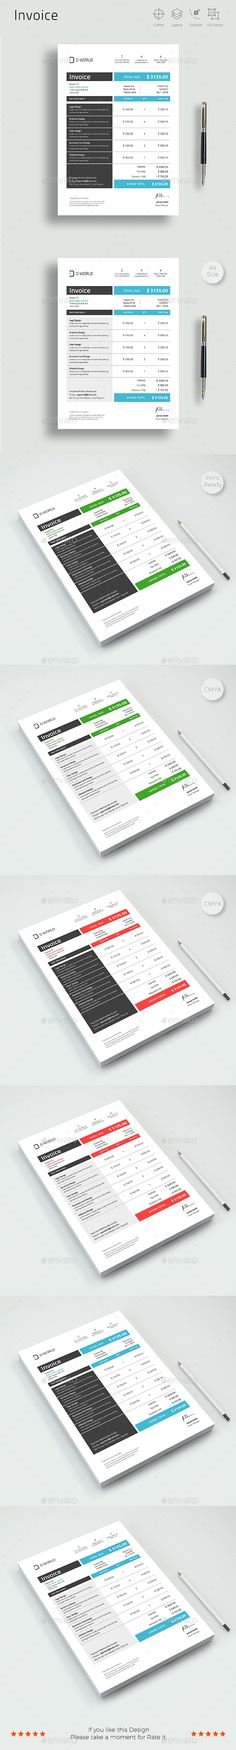 Internal Control Over Cash Receipts Pdf Invoice Template Proposals And Stationery On Pinterest Receipt Scanner Android Excel with Invoice Factoring For Small Business Pdf Invoice  Photoshop Psd Invoice Design Clean Invoice  Available Here  Garage Invoice Template Pdf